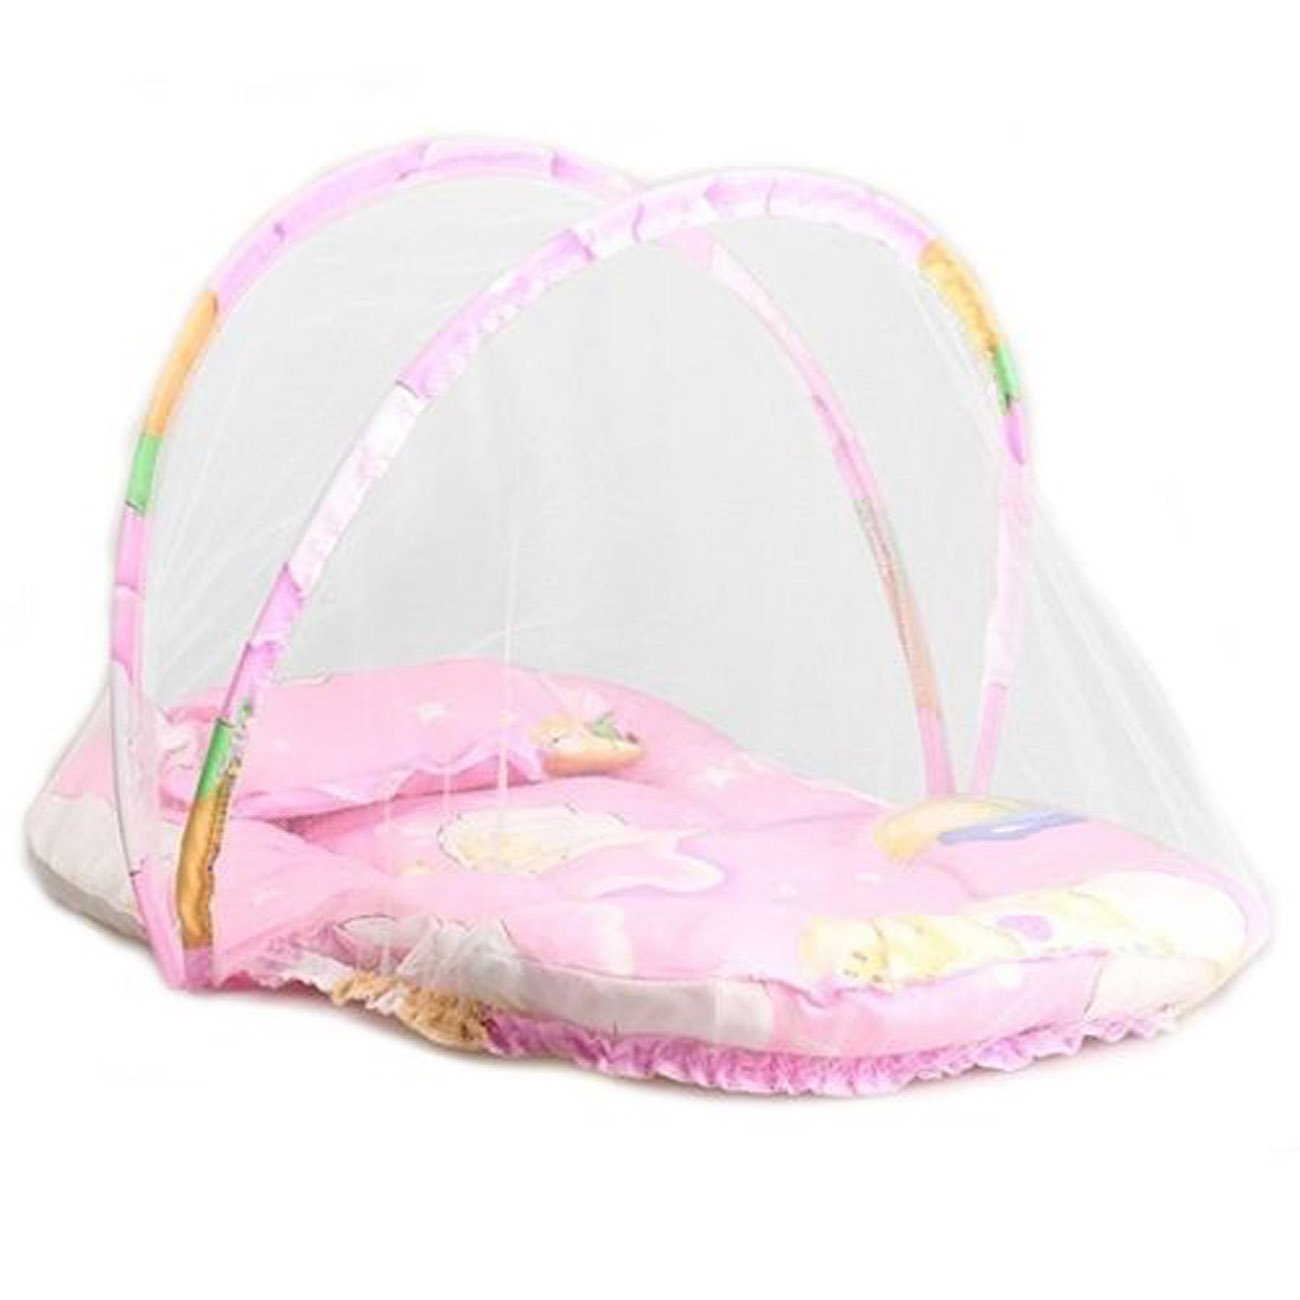 Baby Infant Portable Foldable Travel Bedding Crib Canopy Mosquito Net Tent with Pillow (Blue) CHRONSTYLE